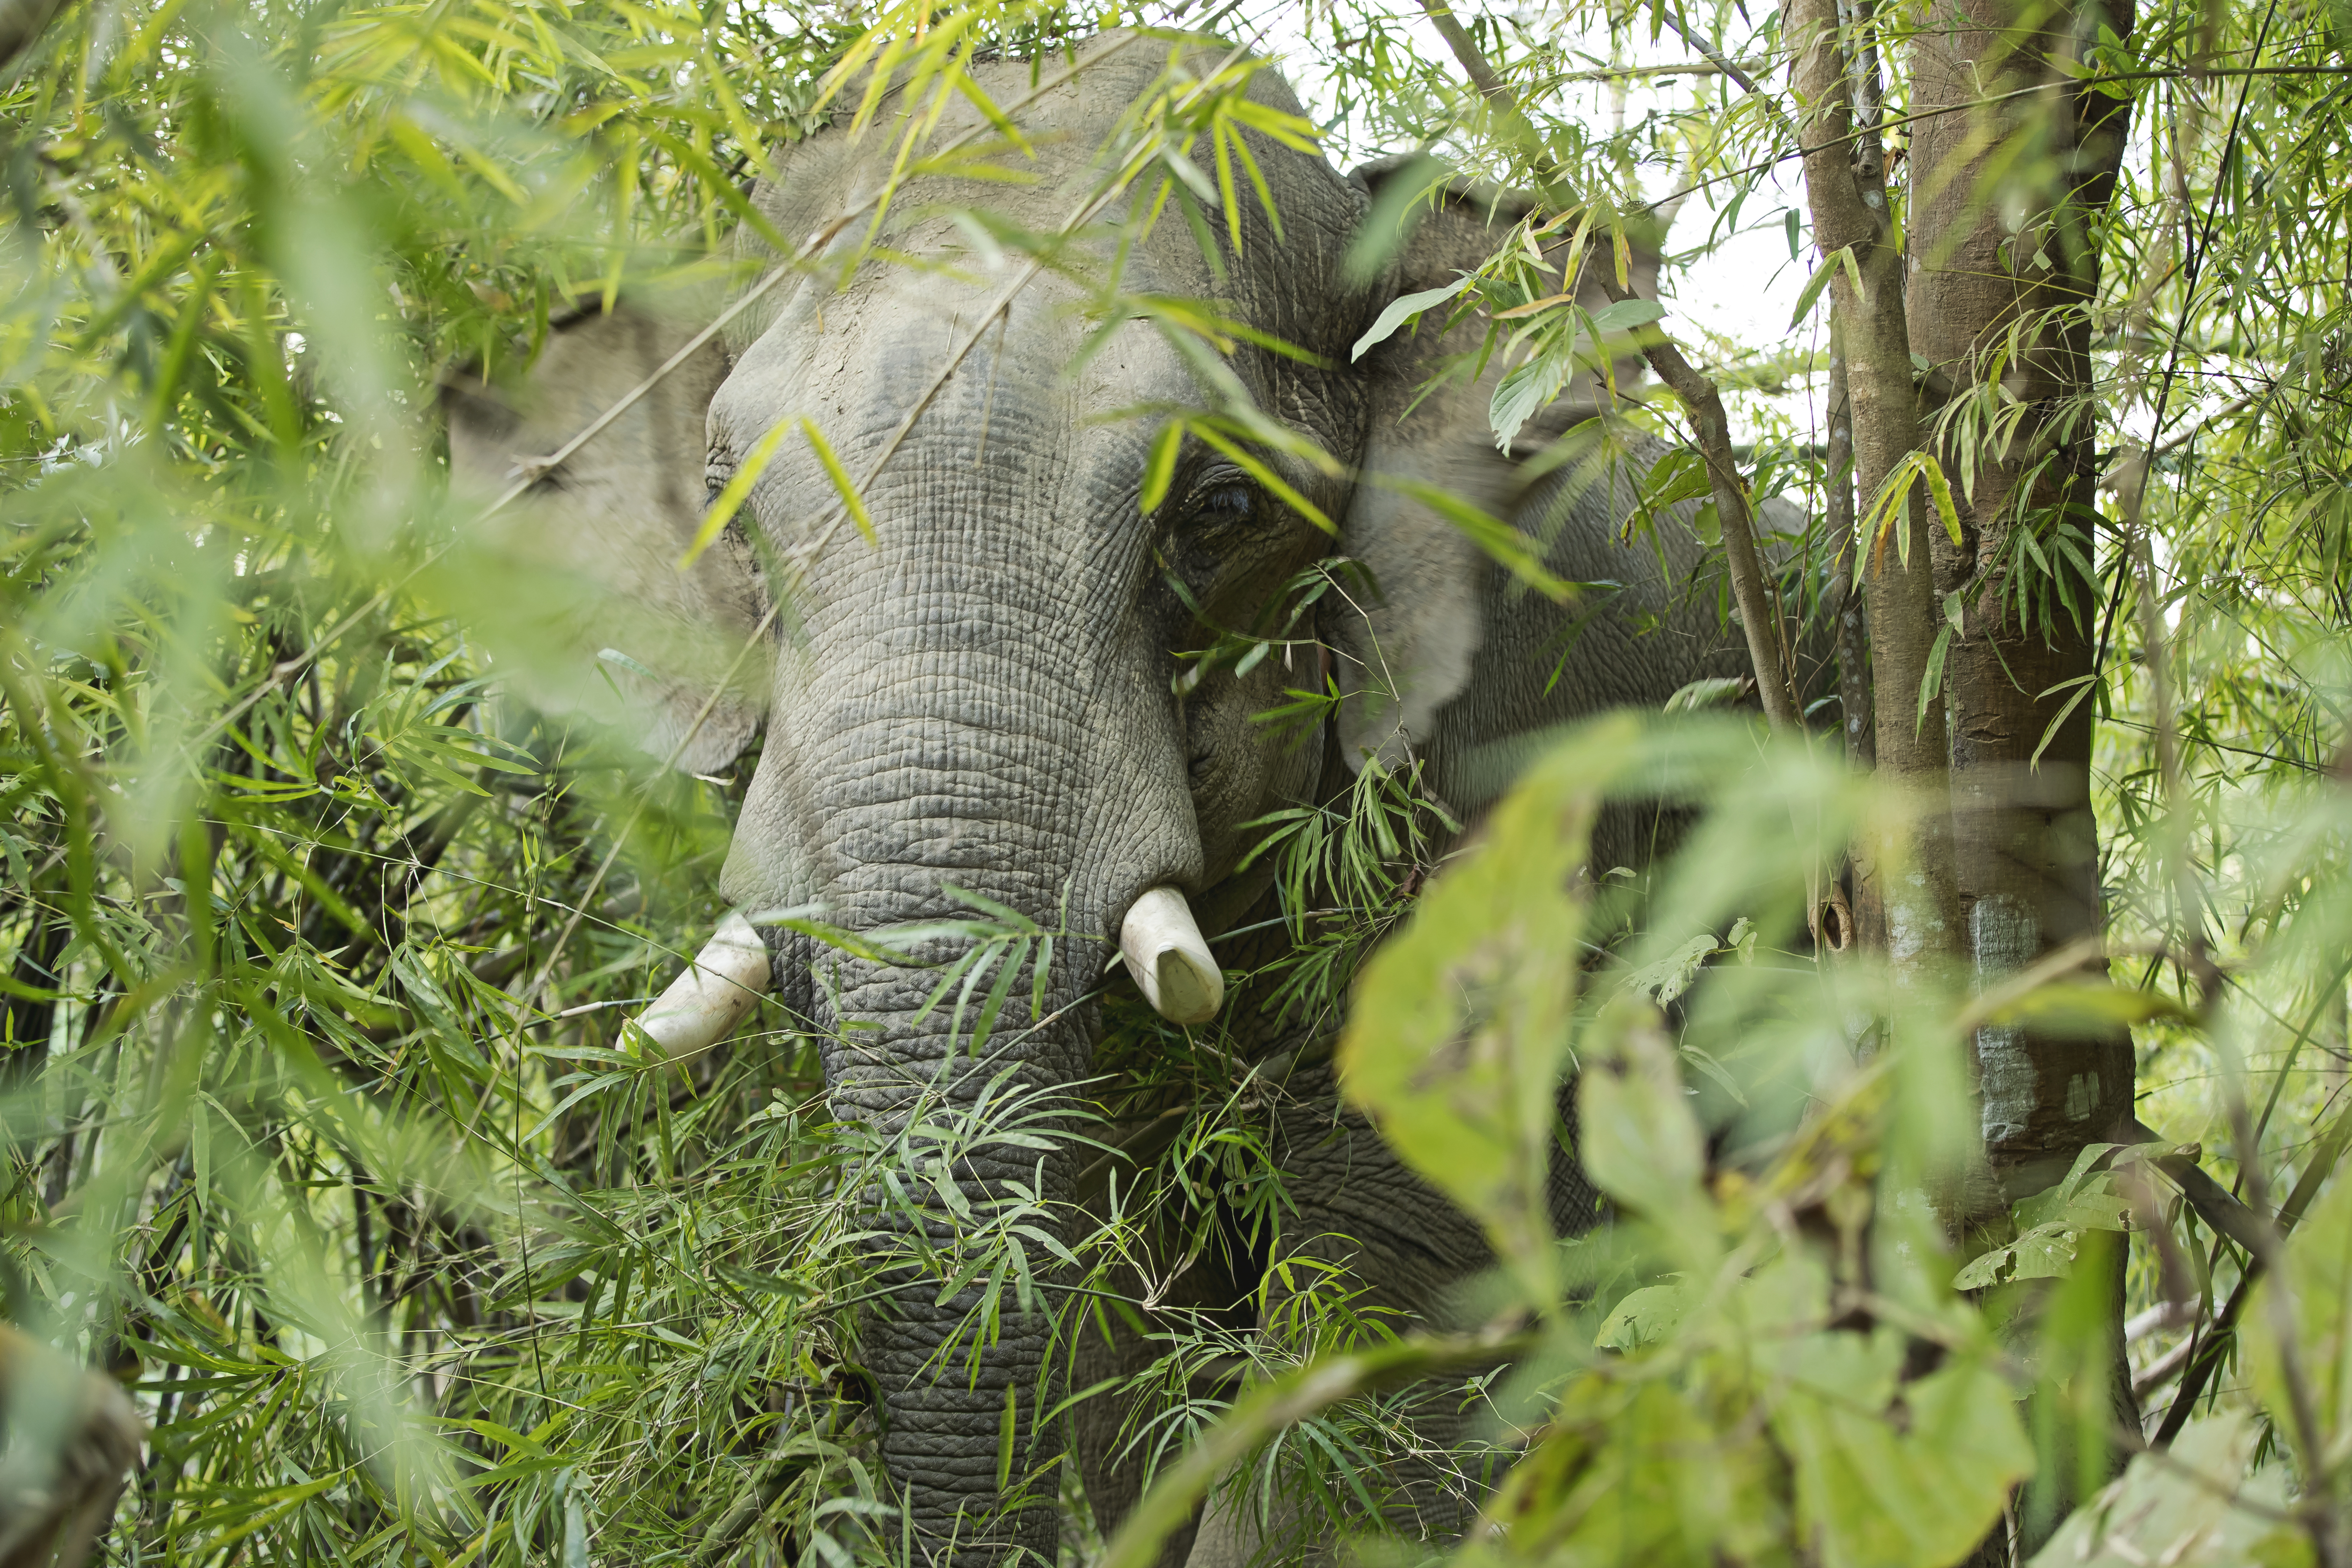 Elefant in Myanmar © Julia Thiemann / WWF-Germany